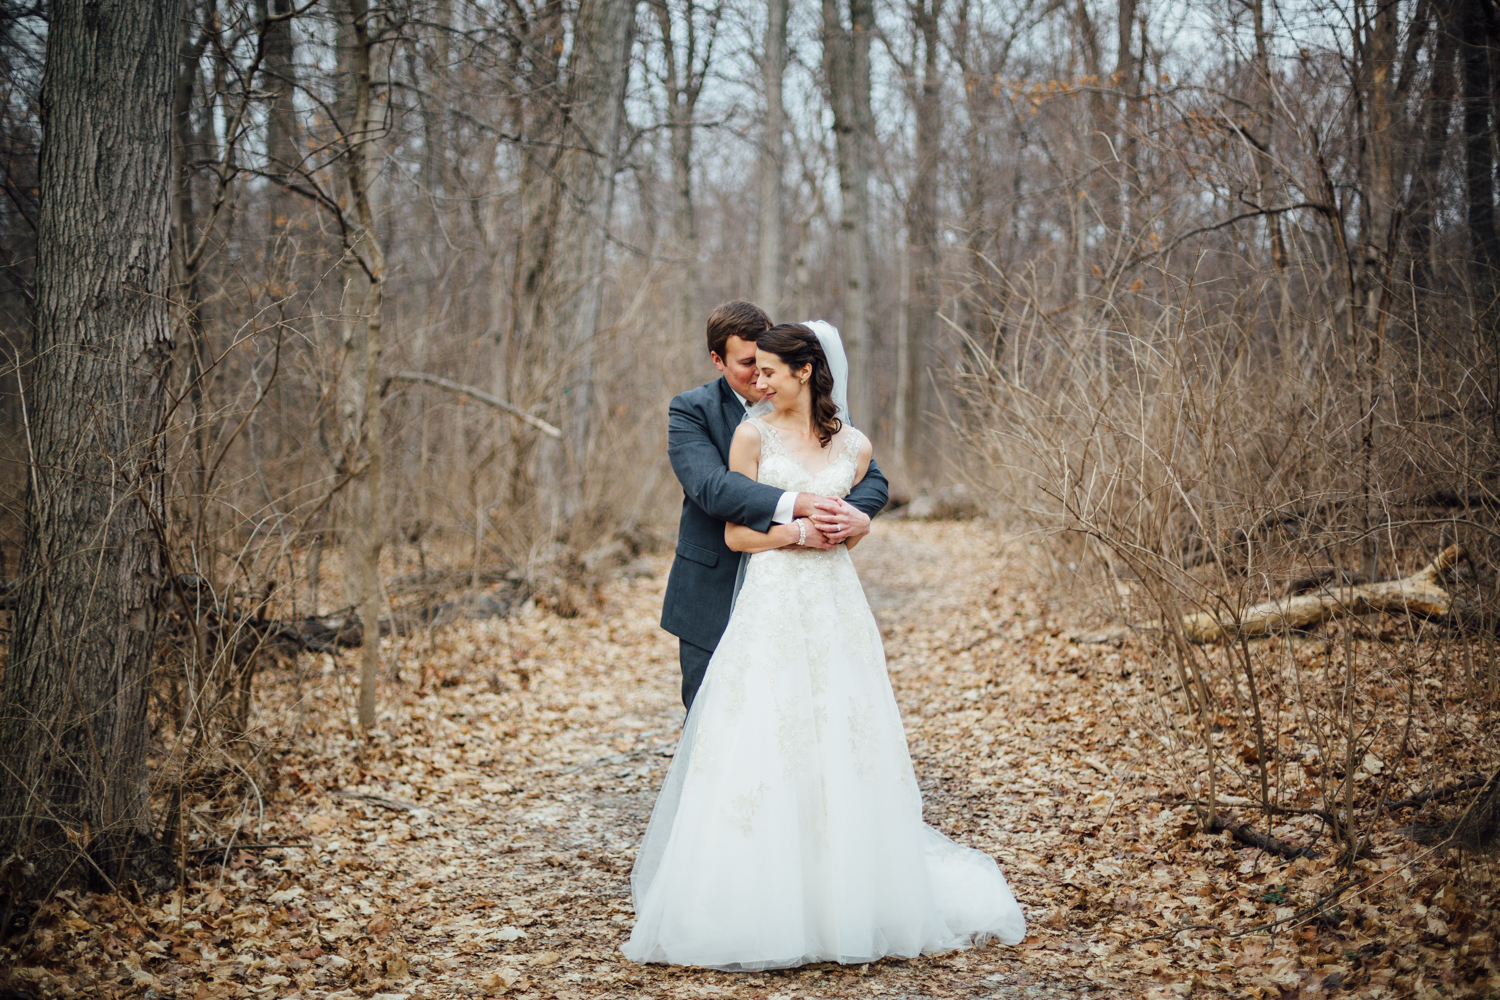 Fun, Intimate Spring Wedding by Corrie Mick Photography-75.jpg